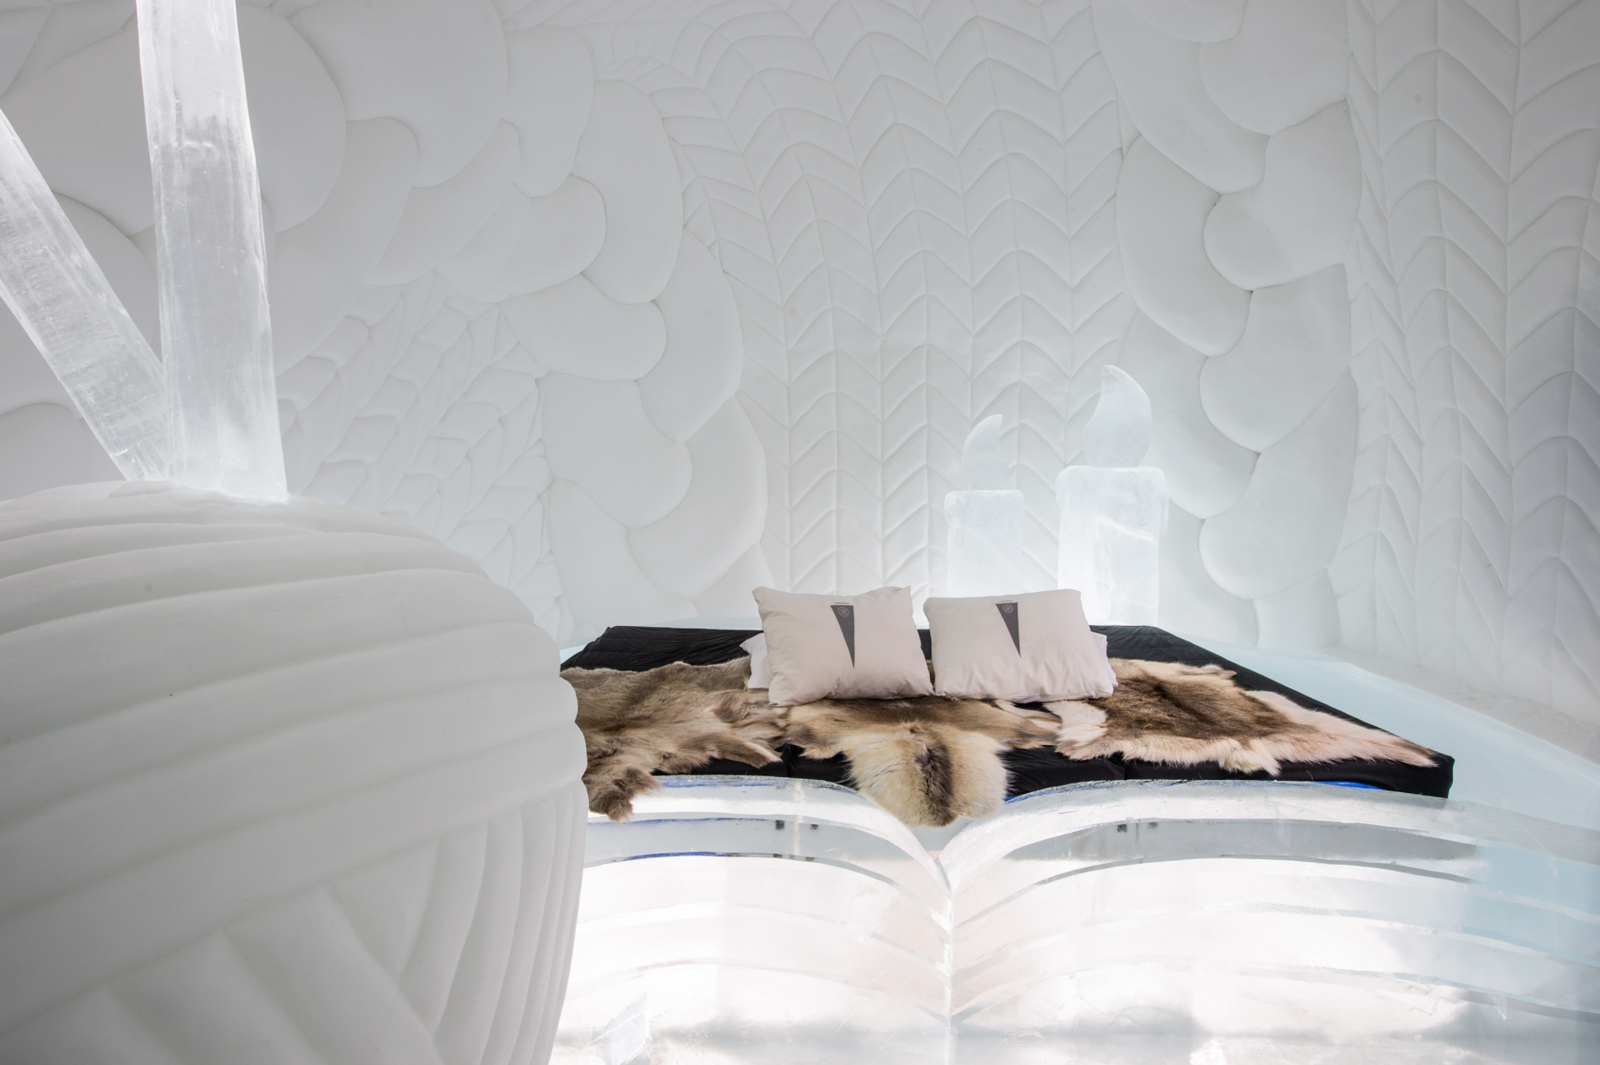 Sweden's Icehotel Celebrates its 30th Year With 15 Glittering New Art Suites